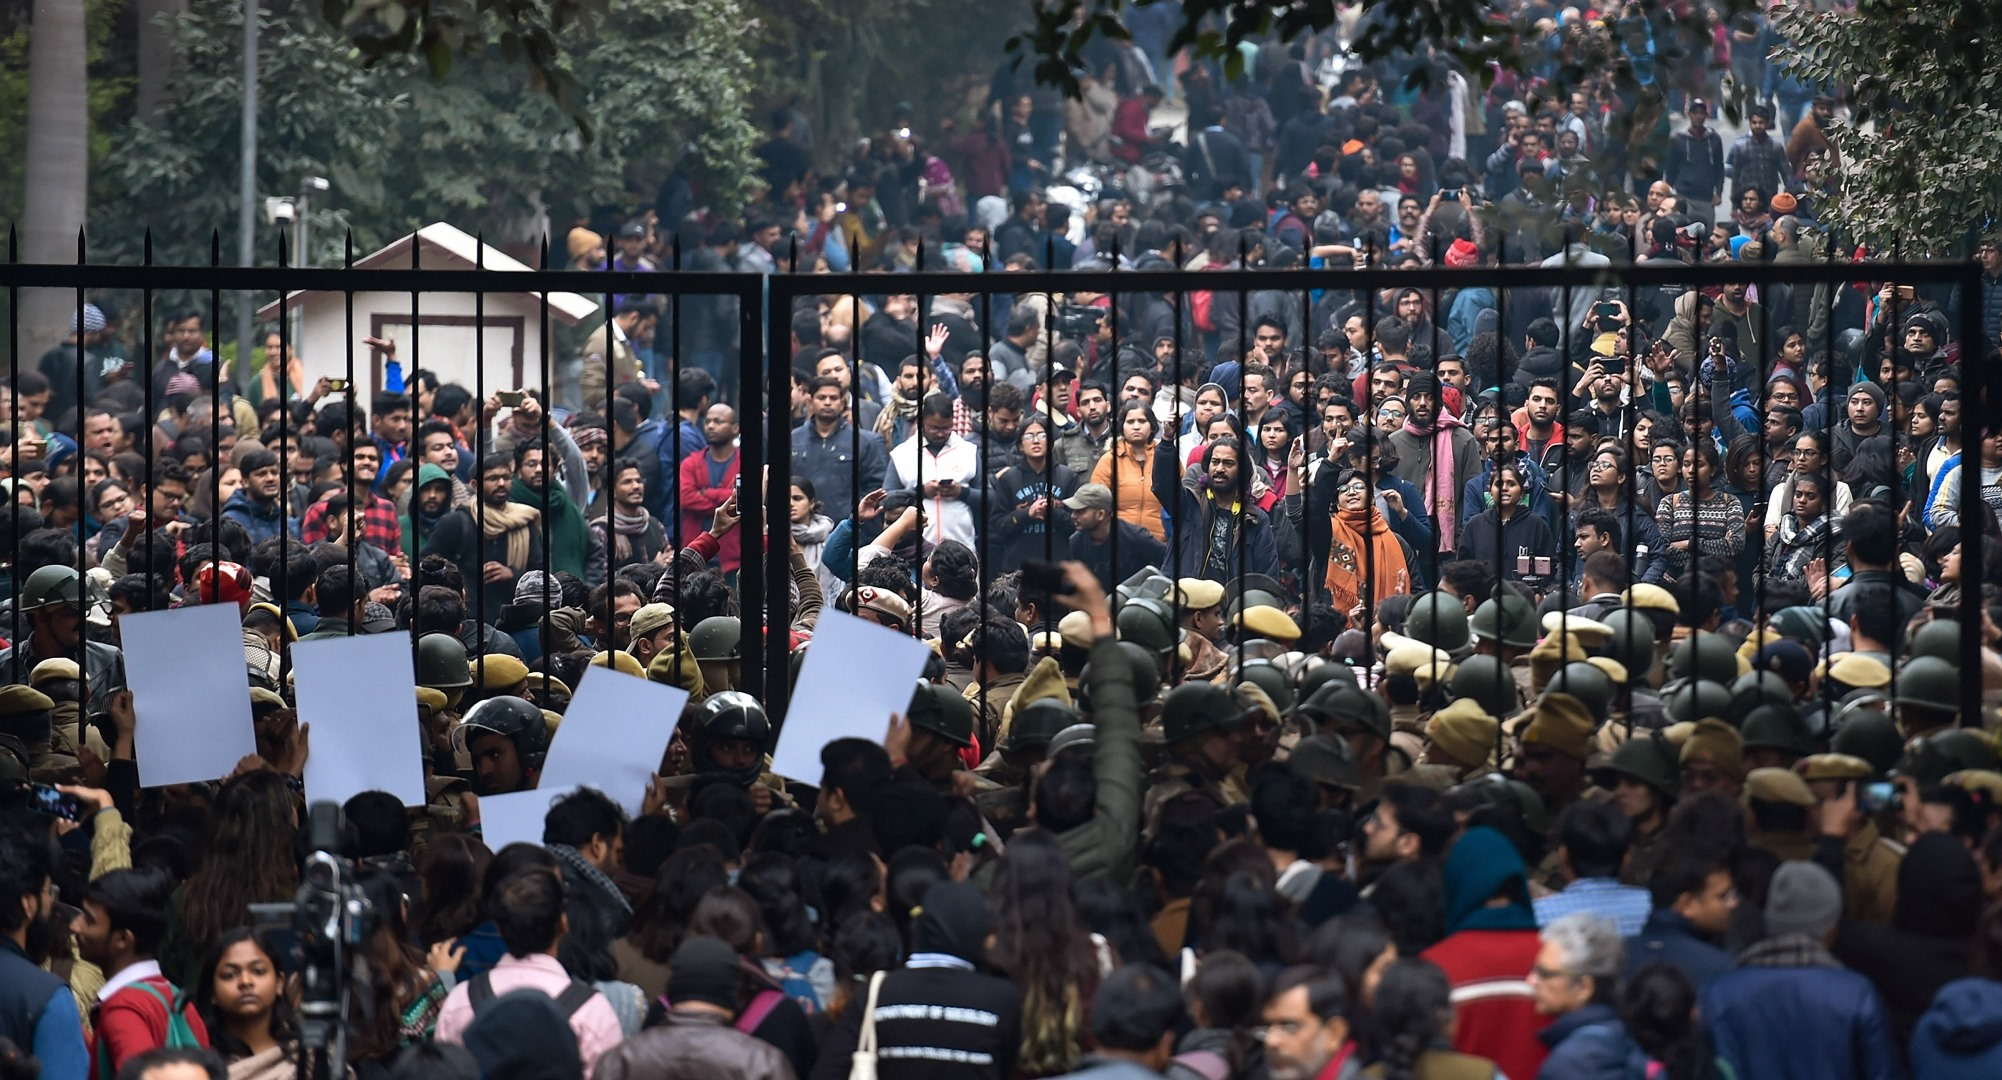 New Delhi: Students stage a protest at main Gate of JNU over Sunday's violence, in New Delhi, Monday, Jan. 6, 2020. A group of masked men and women armed with sticks, rods and acid allegedly unleashed violence on the campus of the University in New Delhi, Sunday evening.(PTI Photo/Atul Yadav)(PTI1_6_2020_000147B)